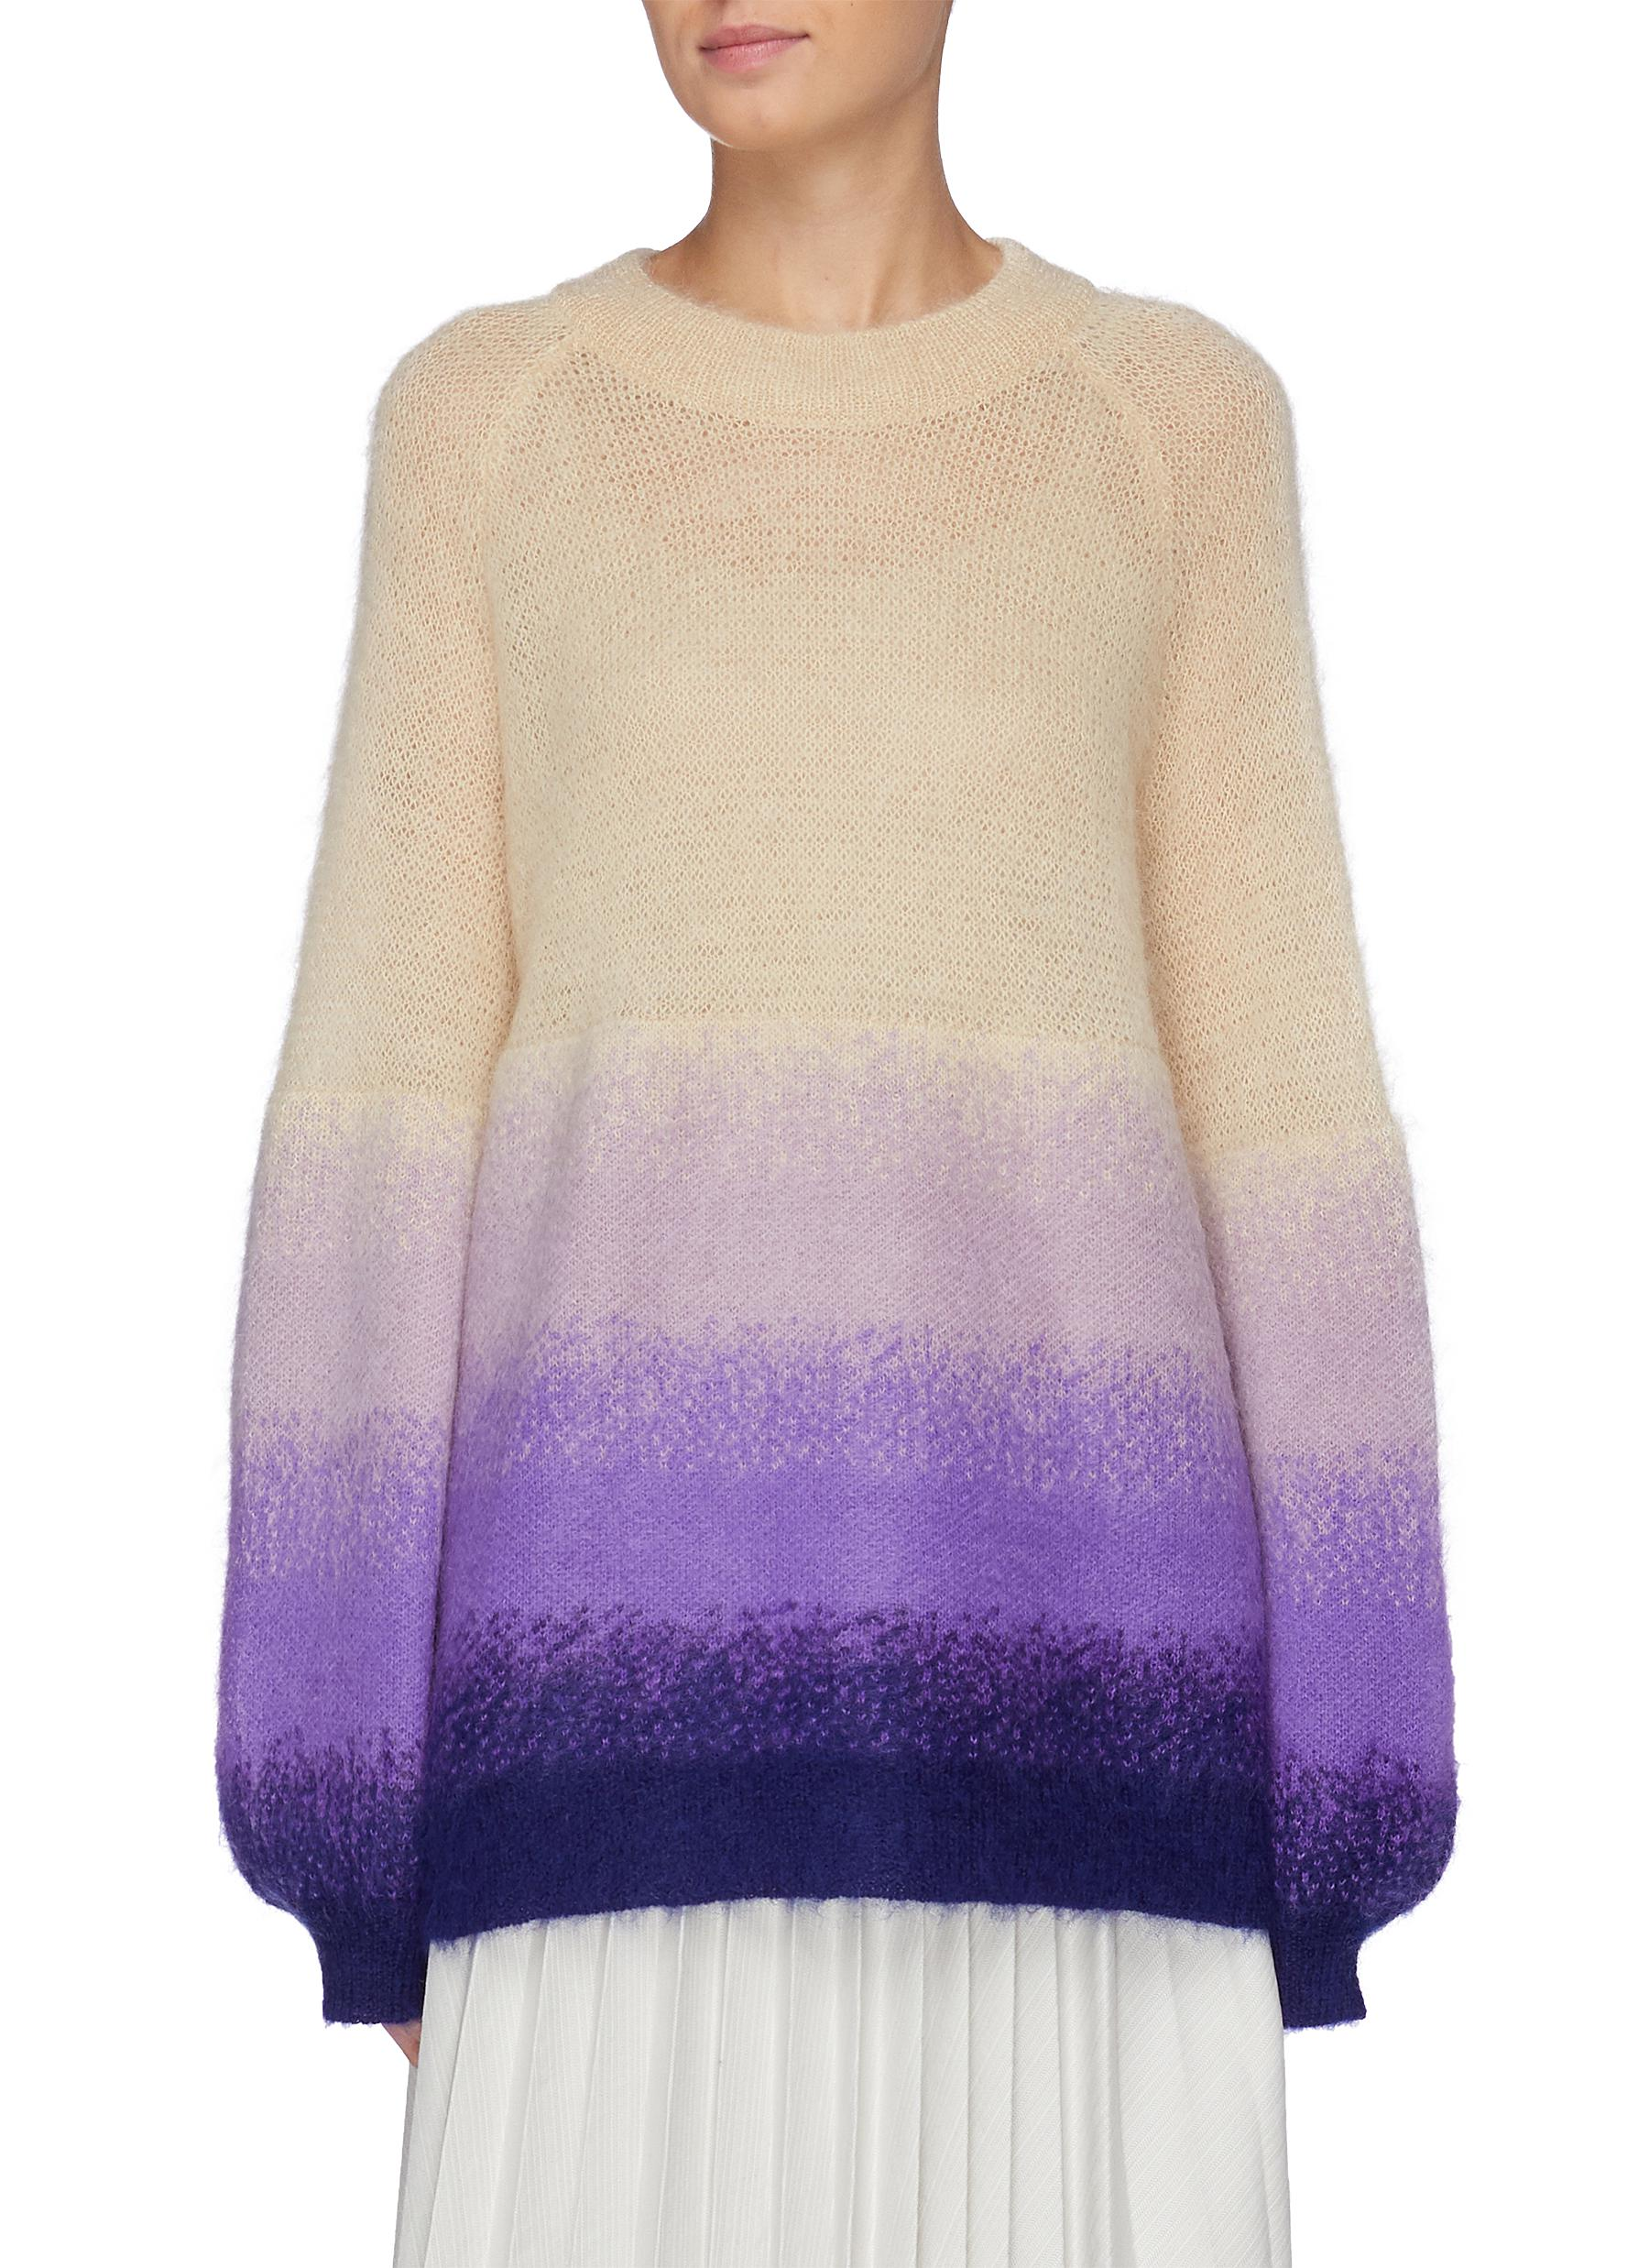 Balloon sleeve gradient Mohair sweater by Short Sentence